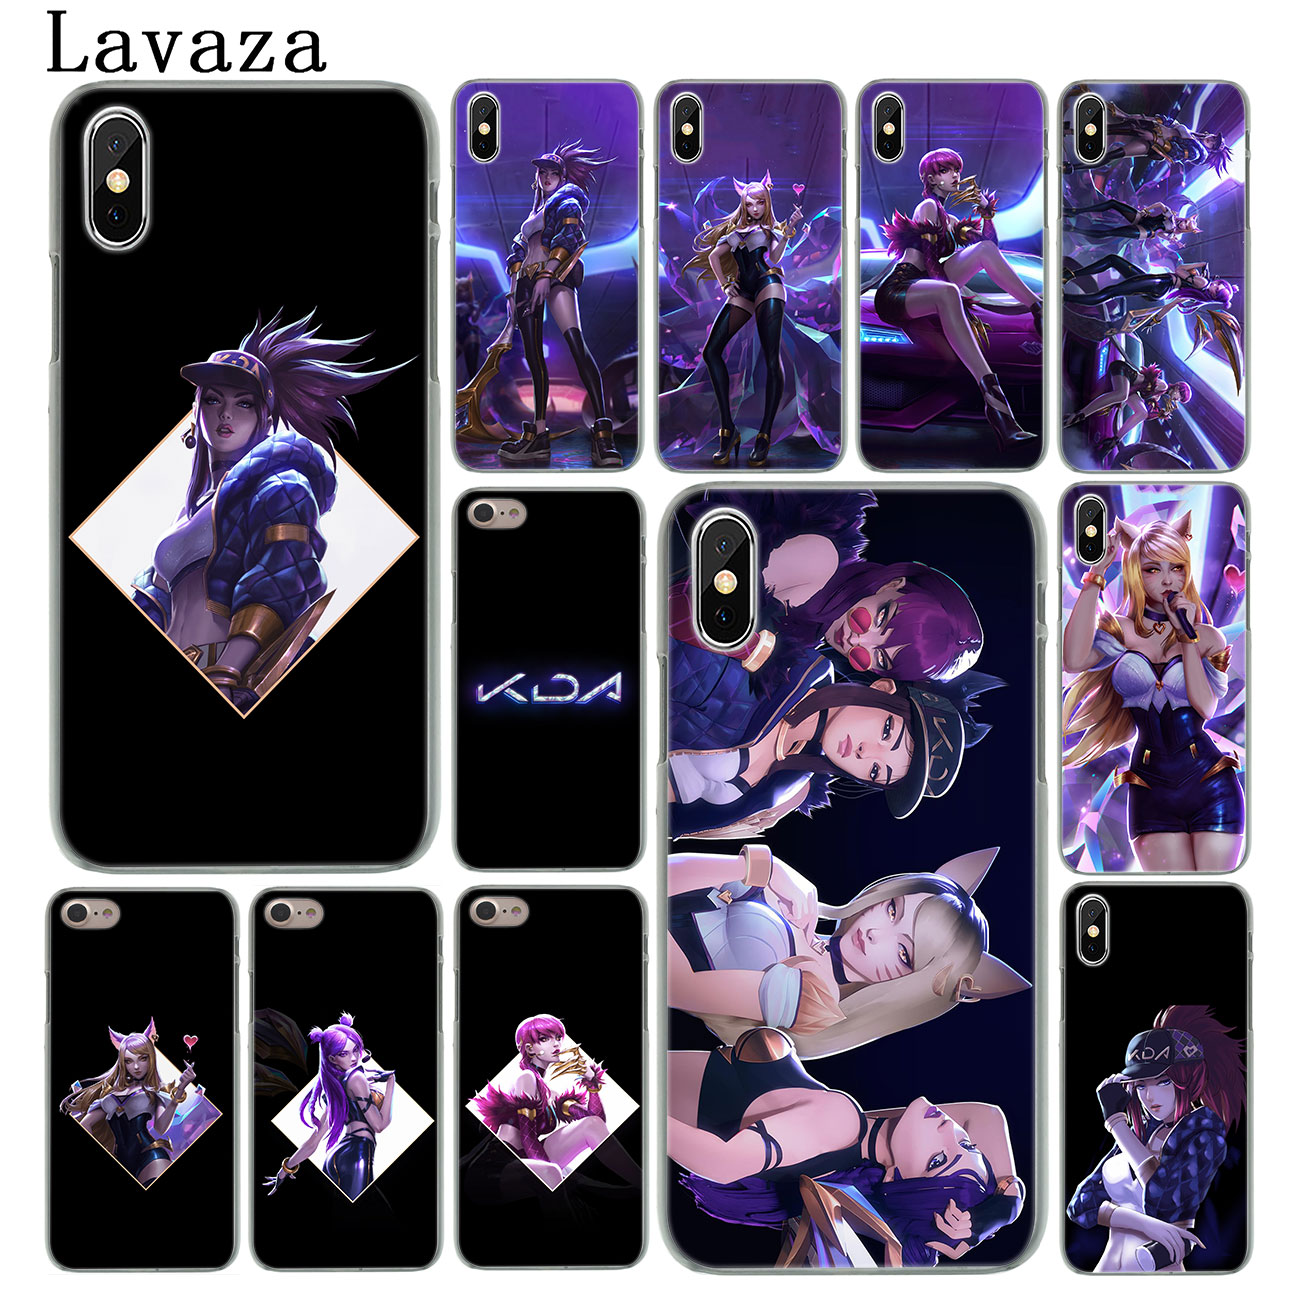 lol League of Legends kda kaisa Ahri akali Evelynn Phone Case for Apple iPhone XS Max X XR 6 6S 7 8 Plus 5 5S SE 5C 4S 10 Cases